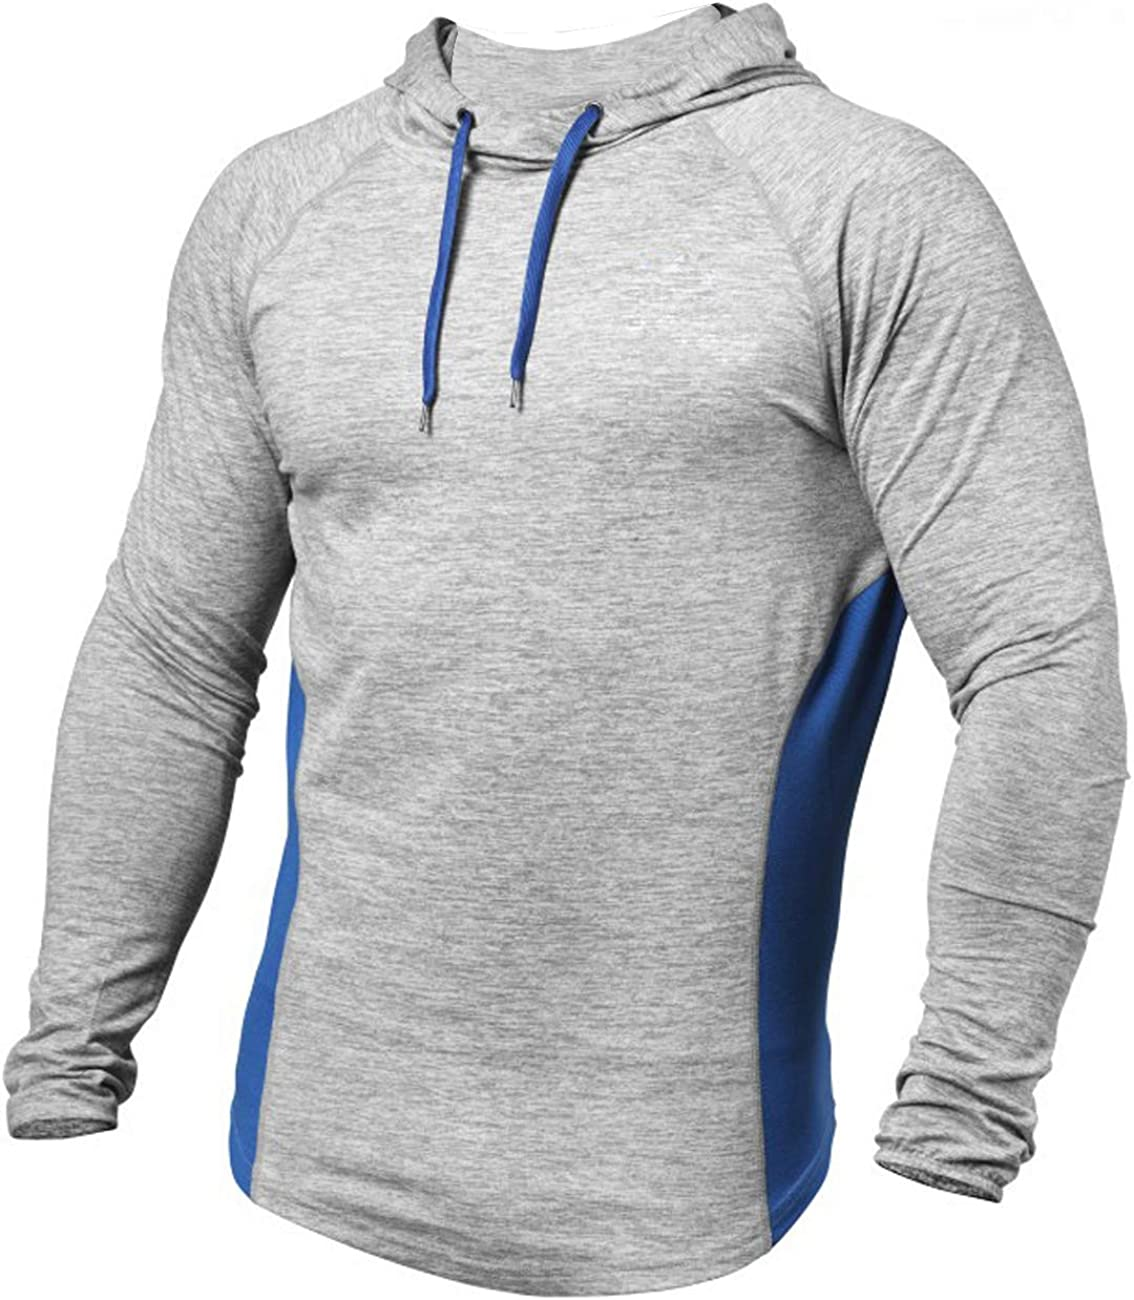 PAIZH Mens Workout Hoodies Dry Fit Outdoor Lightweight Pullover Hooded Tops